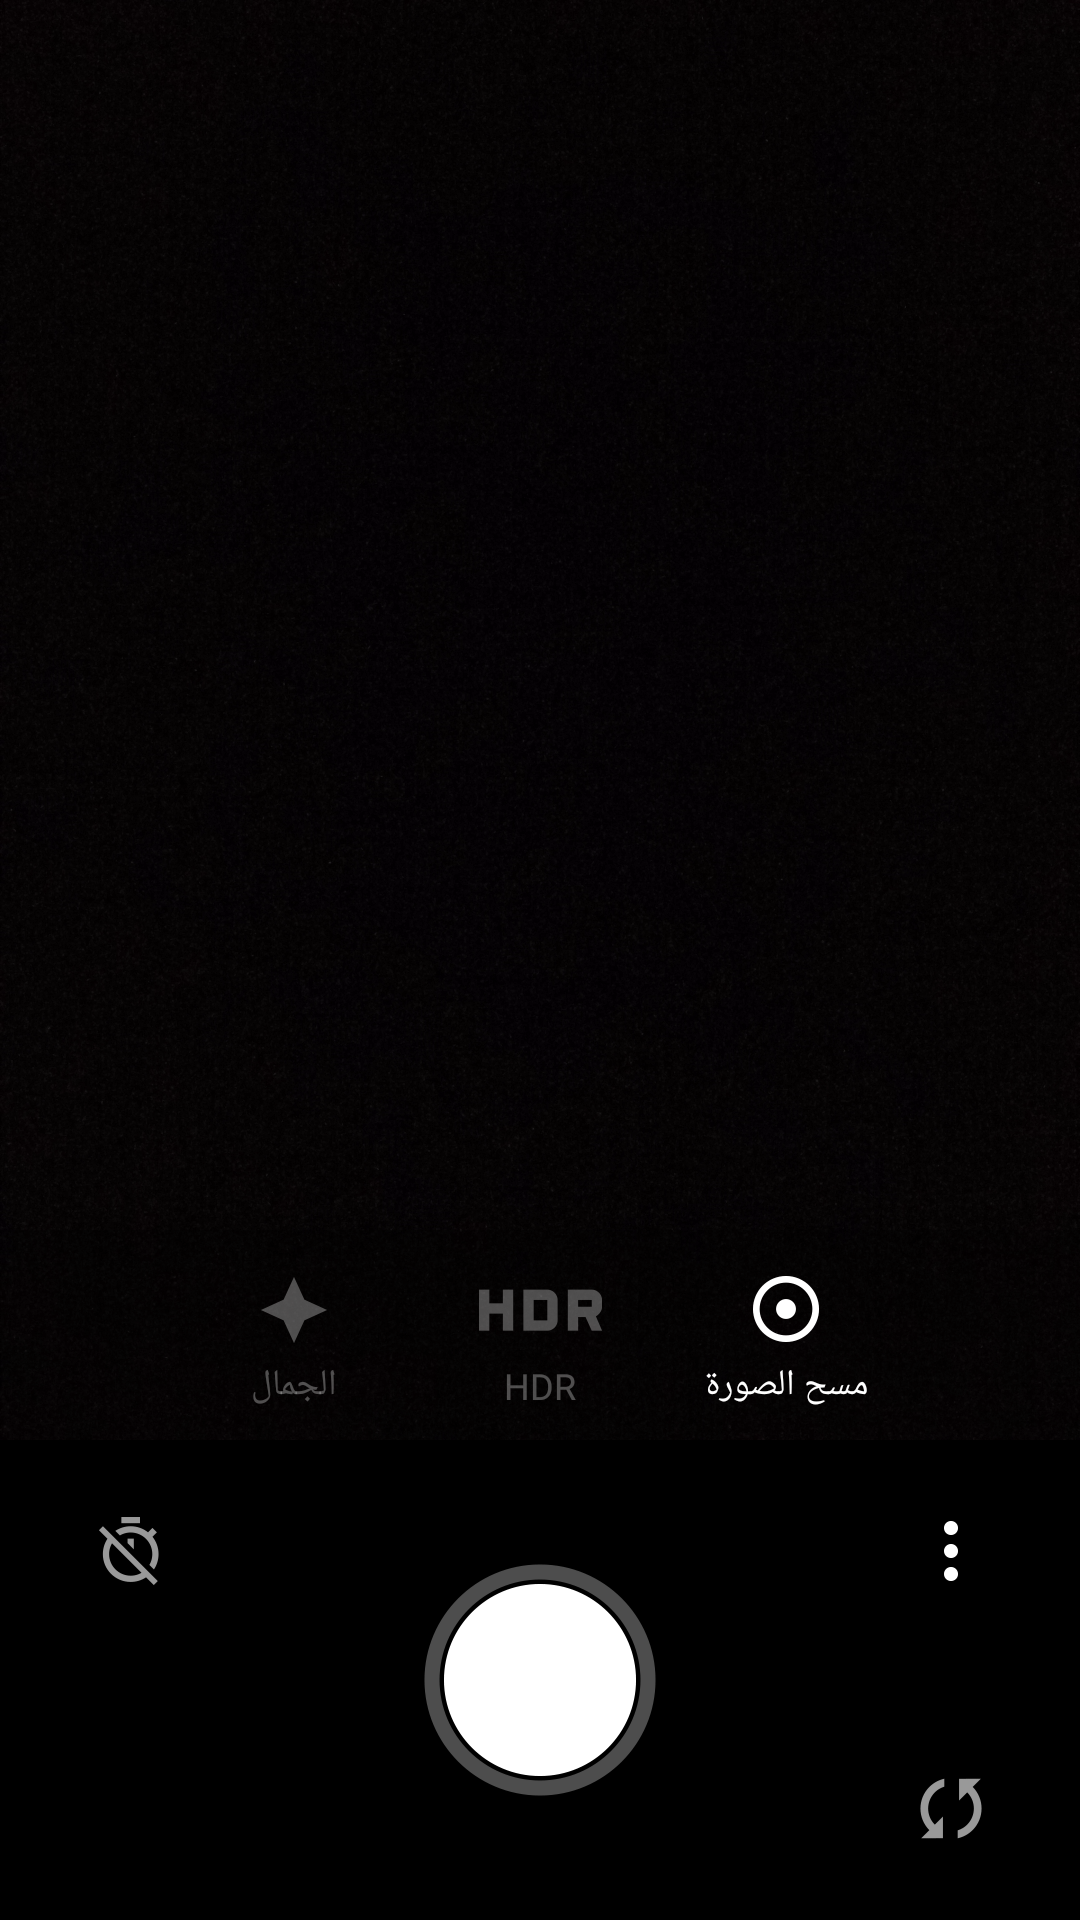 Screenshot_٢٠١٥-١١-٢٠-٢٢-٢٧-٠٧